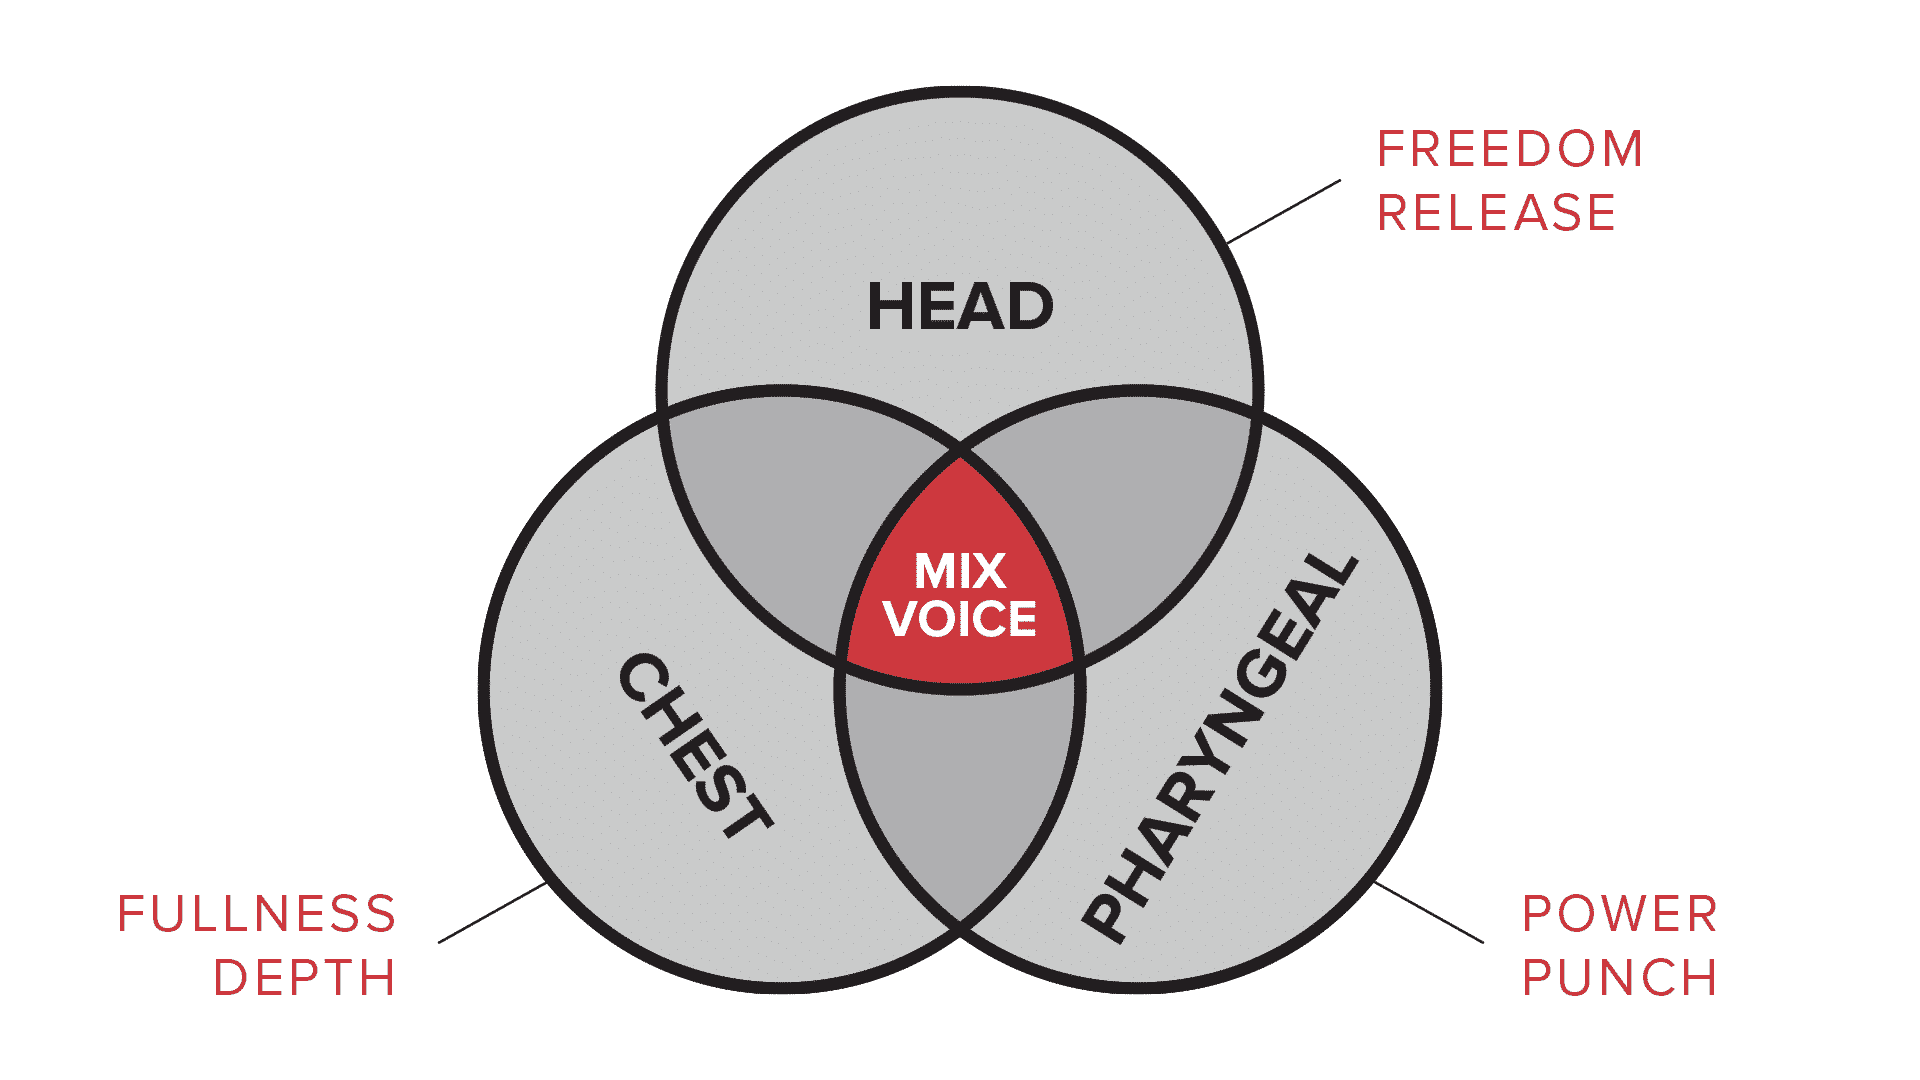 Diagram of mix voice - head and chest and pharyngeal strengths